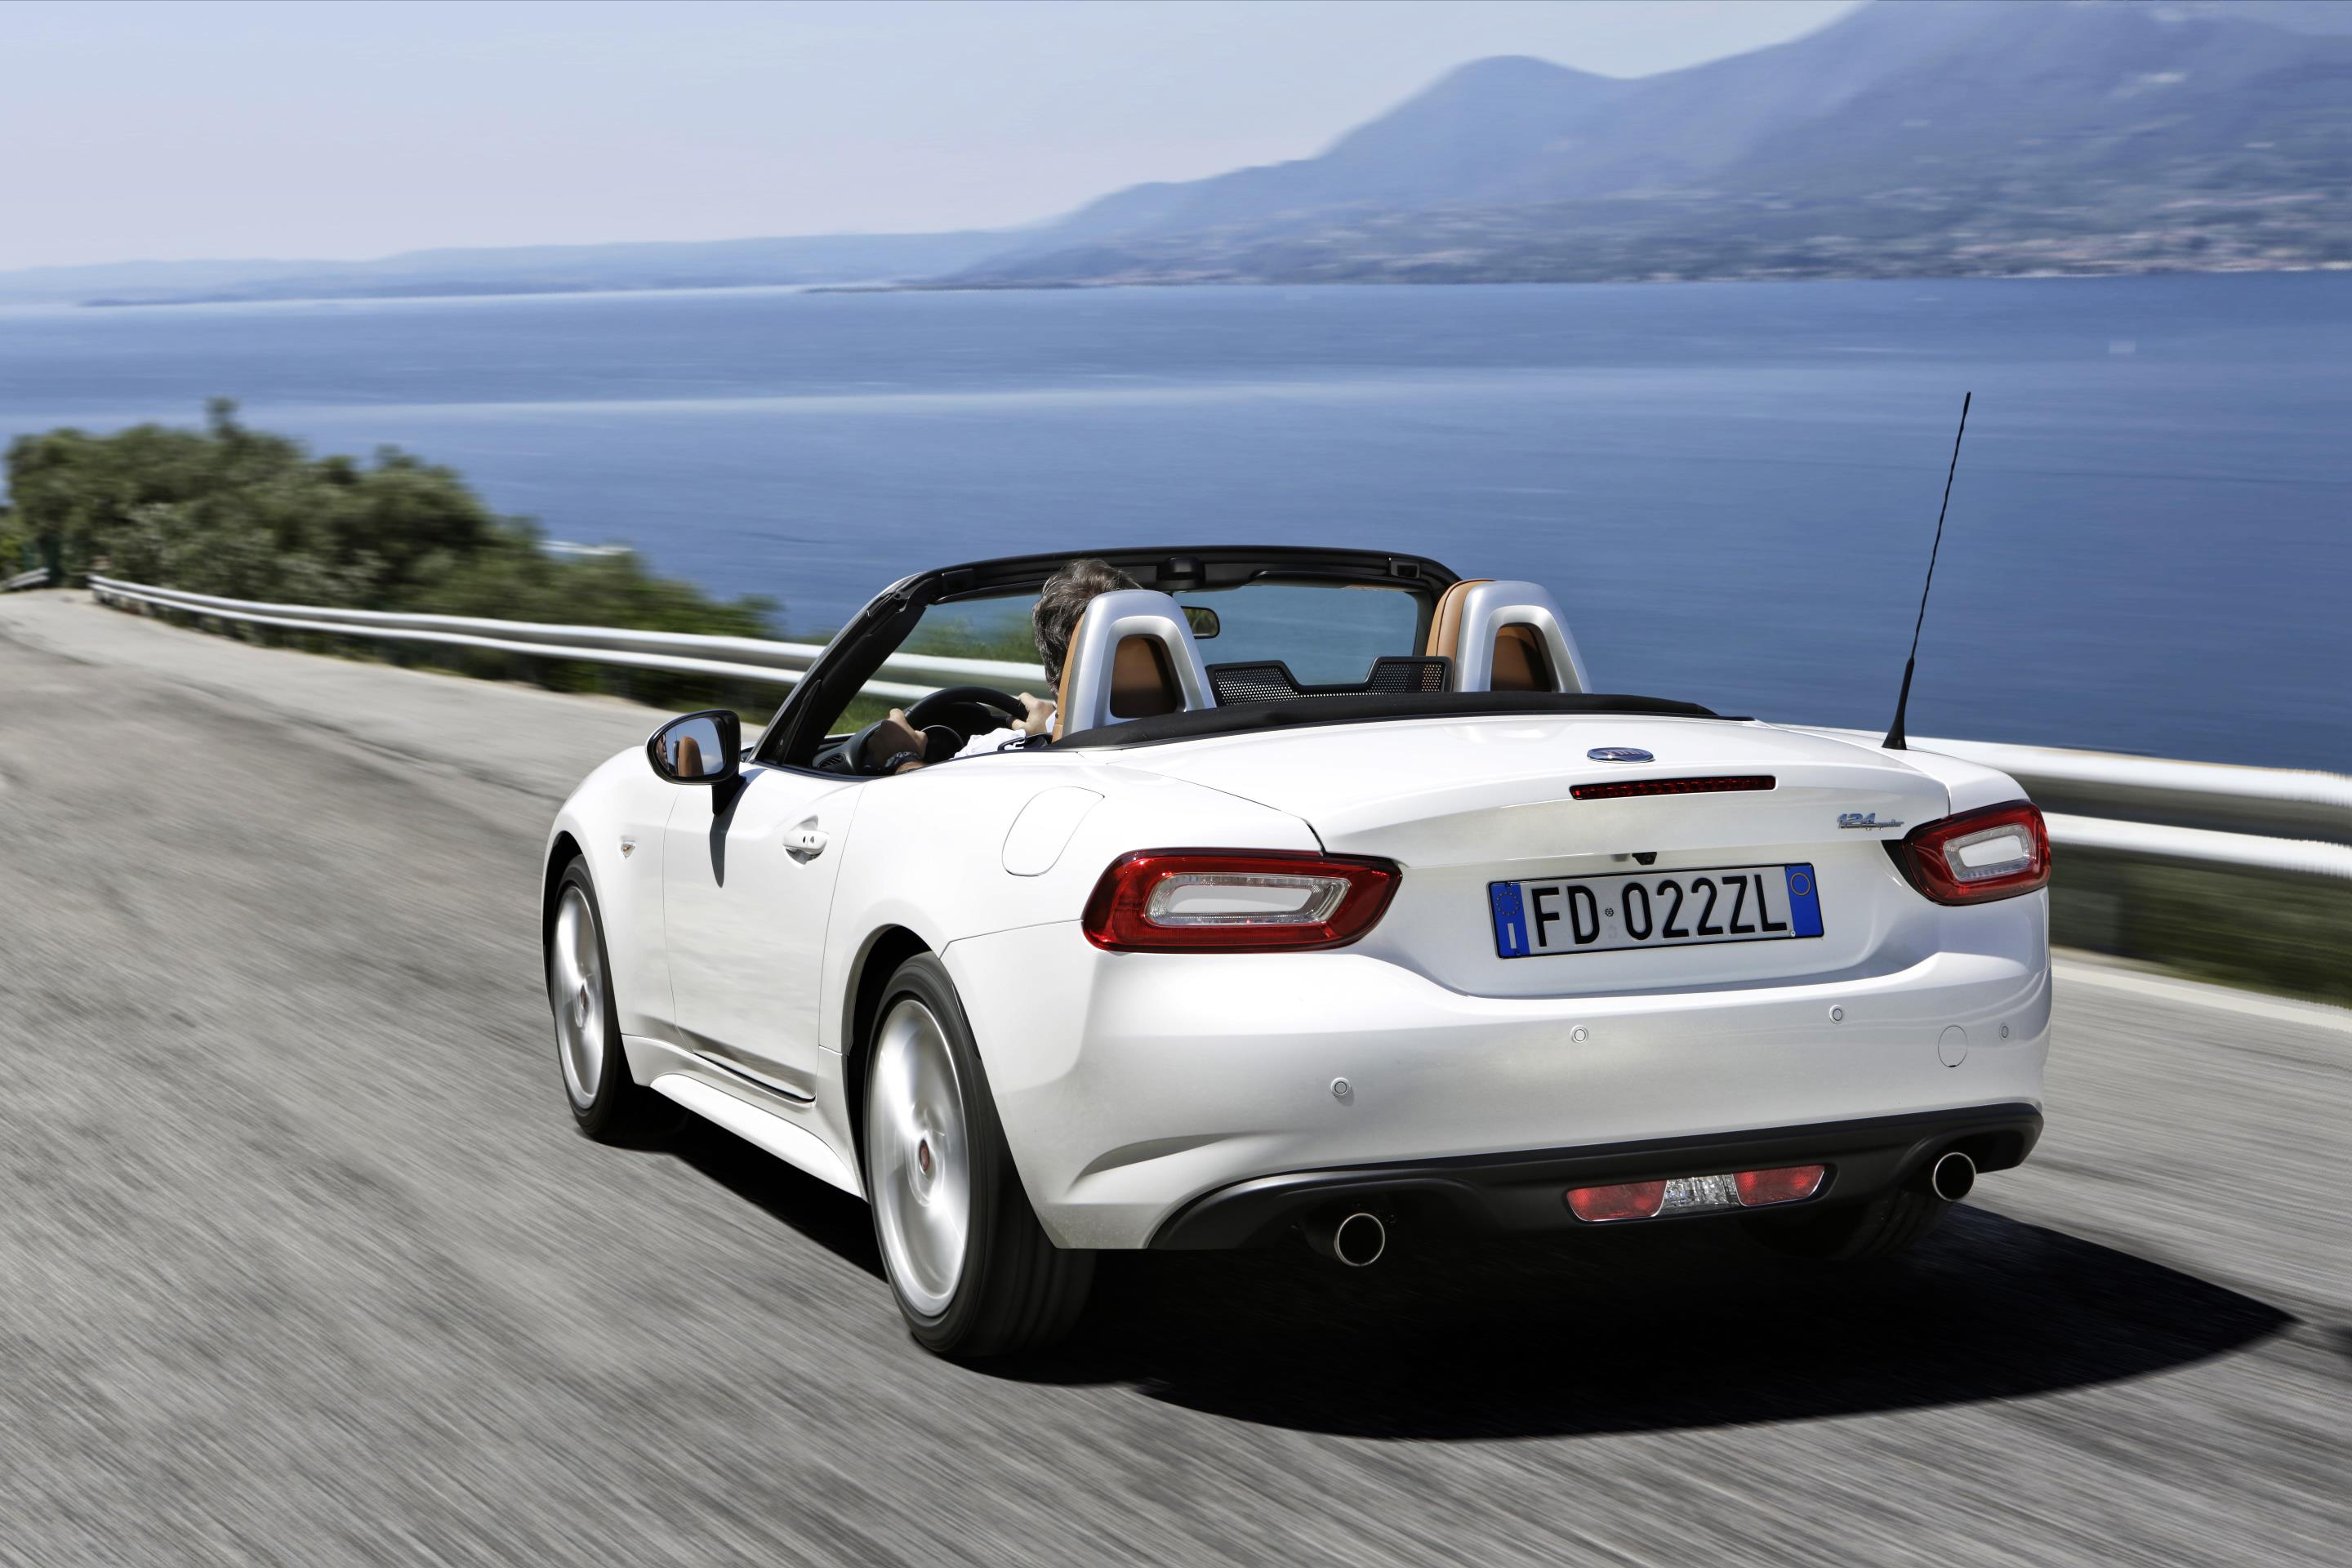 fiat 124 spider named european gay car of the year 2017 autoevolution. Black Bedroom Furniture Sets. Home Design Ideas